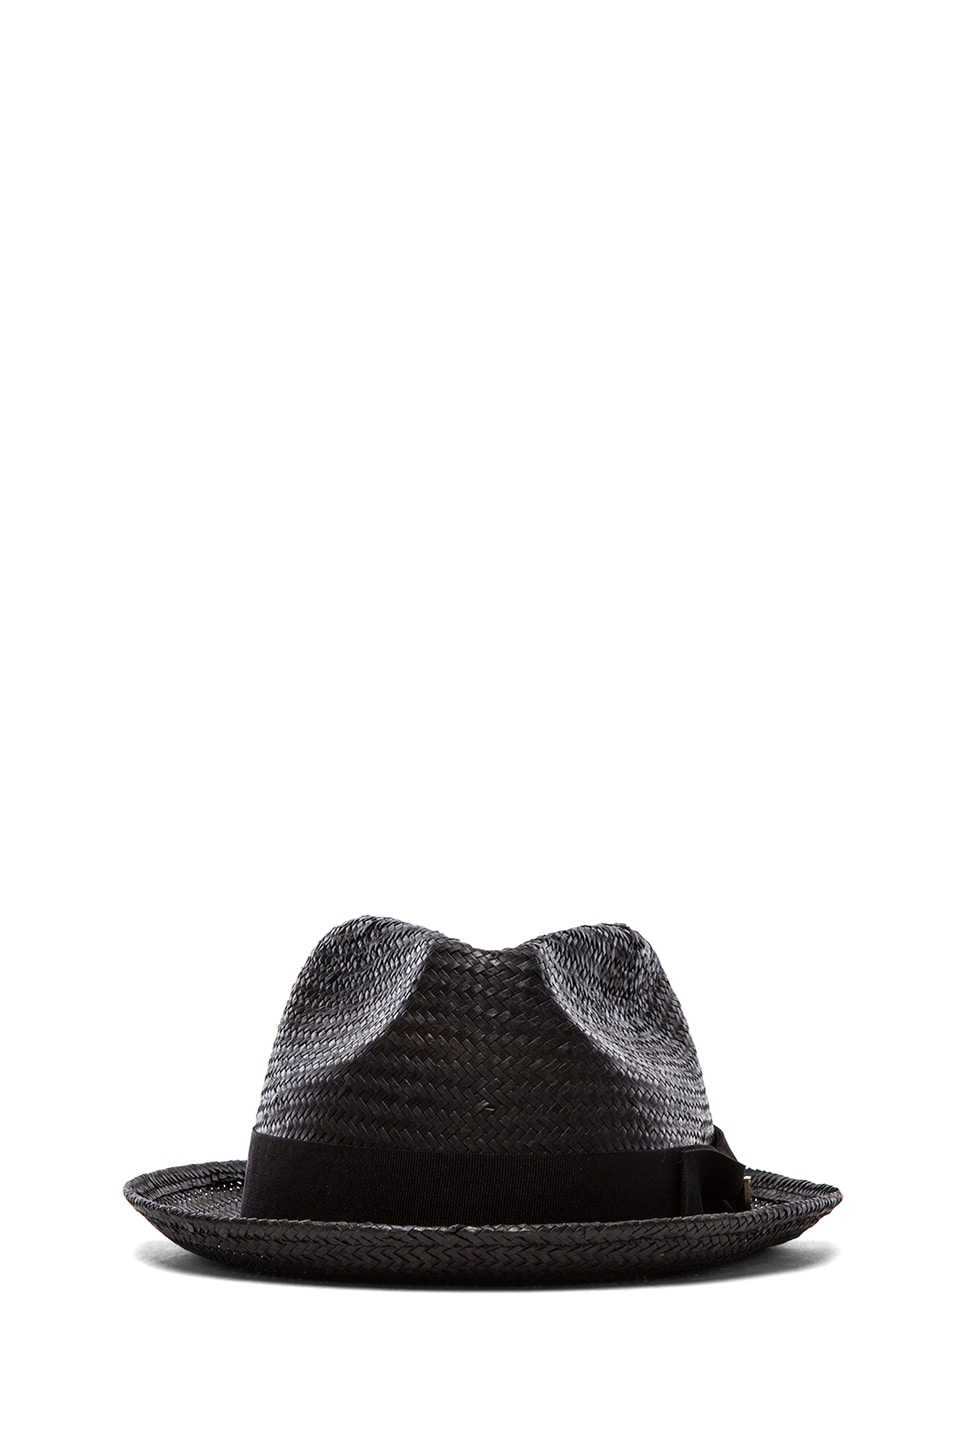 Brixton Castor Fedora in Black Straw